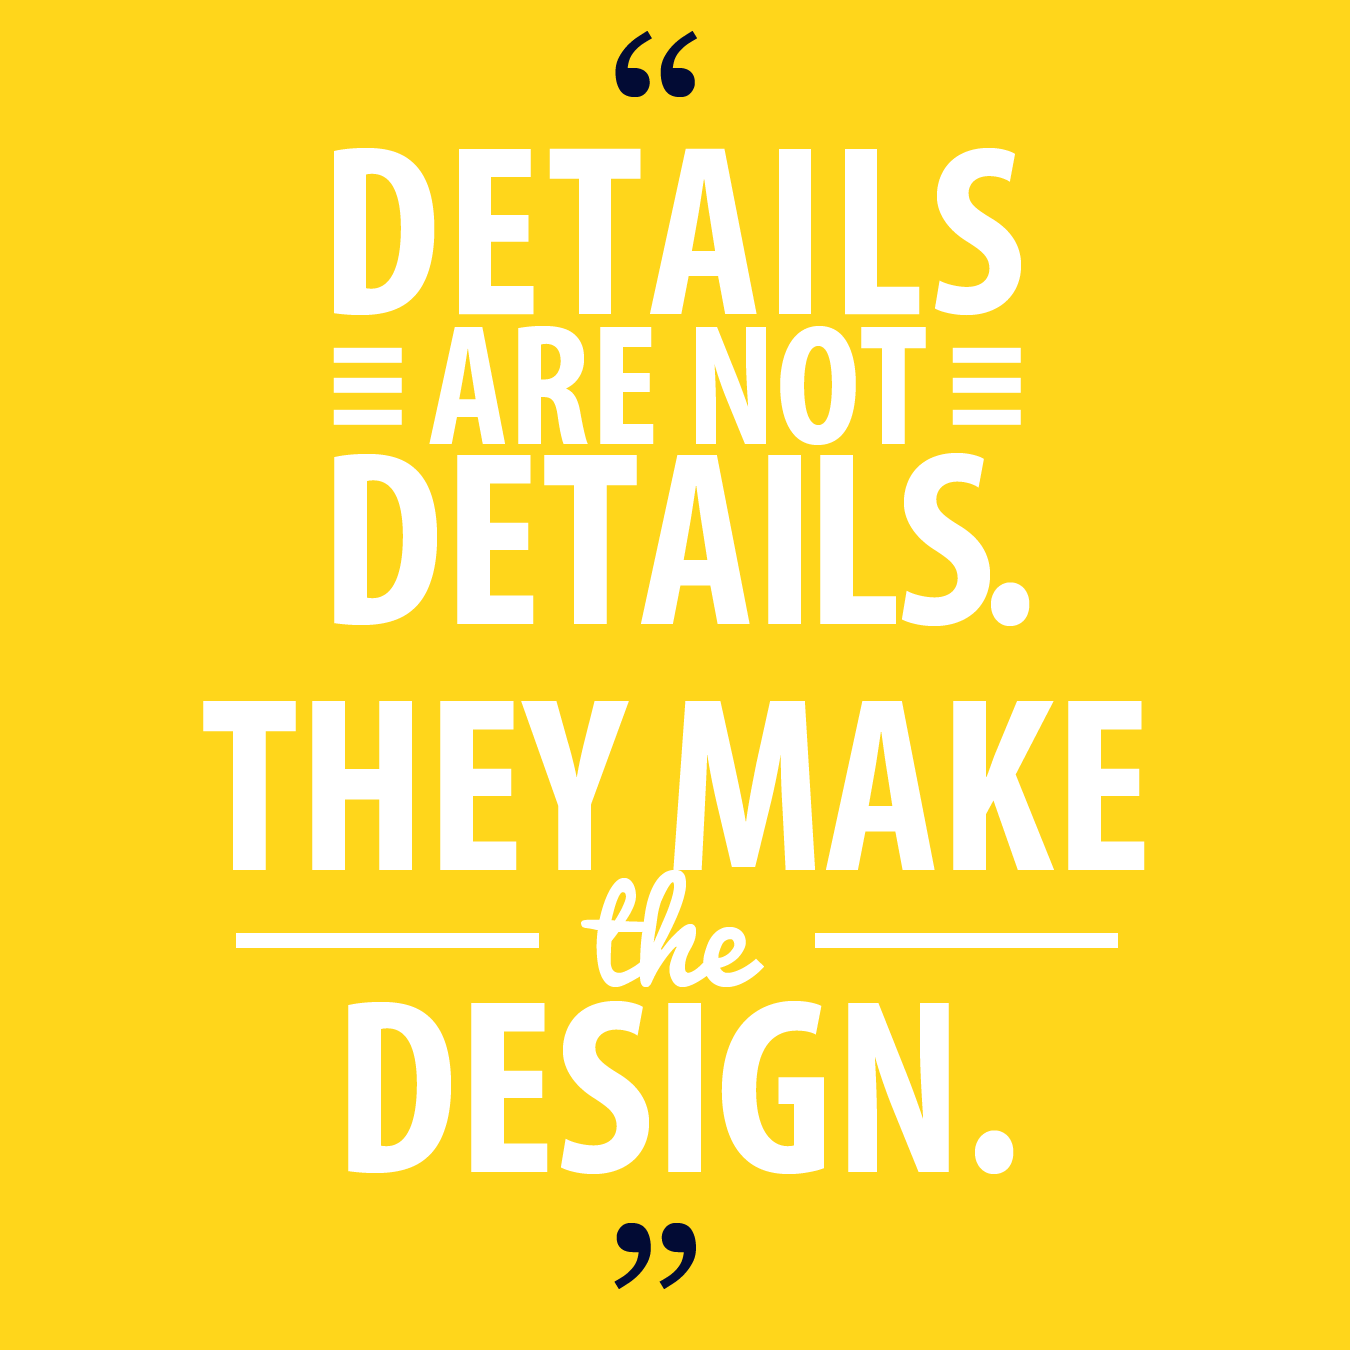 A Quote Architect Charles Eames That Our Design Is A